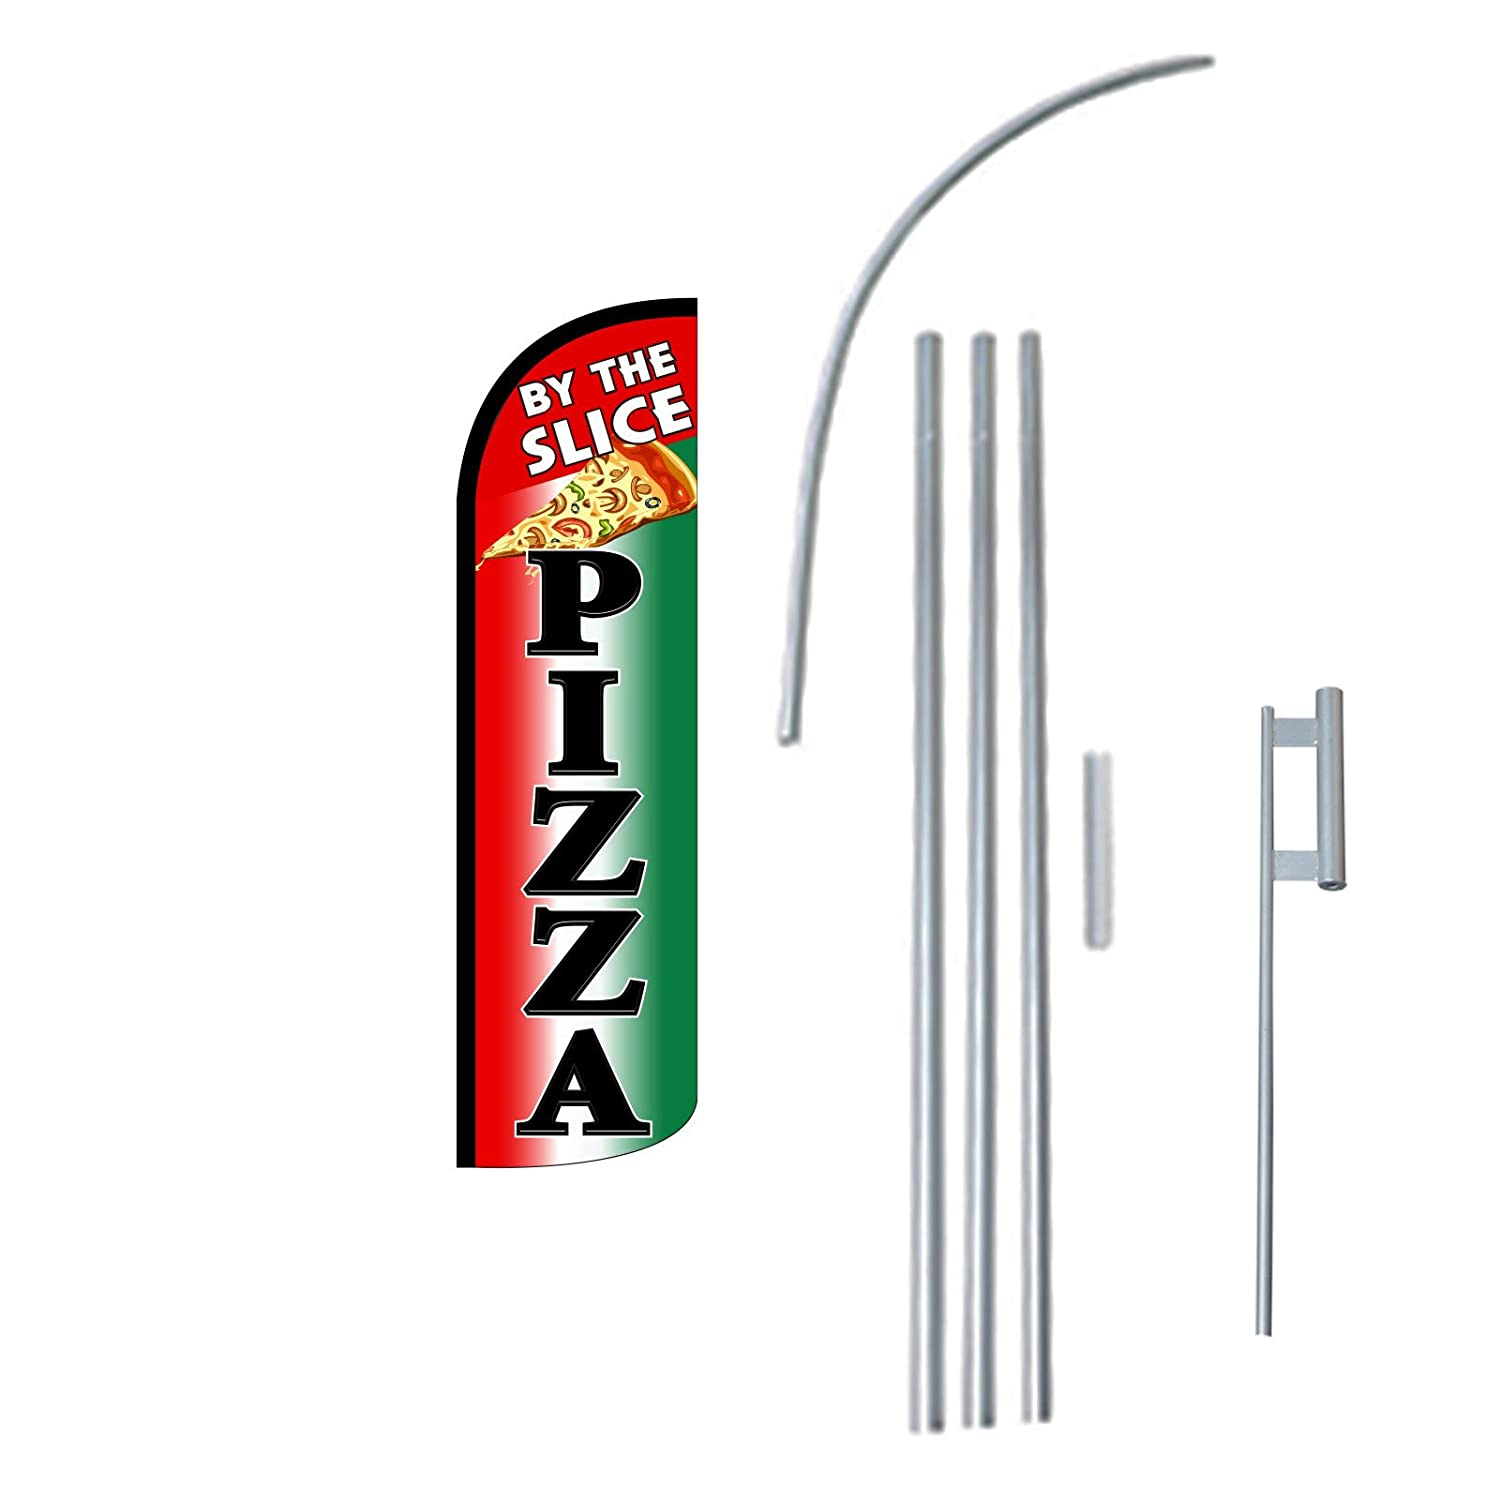 "NEOPlex - ""Pizza By The Slice"" 12-foot KING SIZE (WINDLESS) Complete Swooper Feather Flag Kit...includes 5-piece 15-foot Pole and Ground Spike"